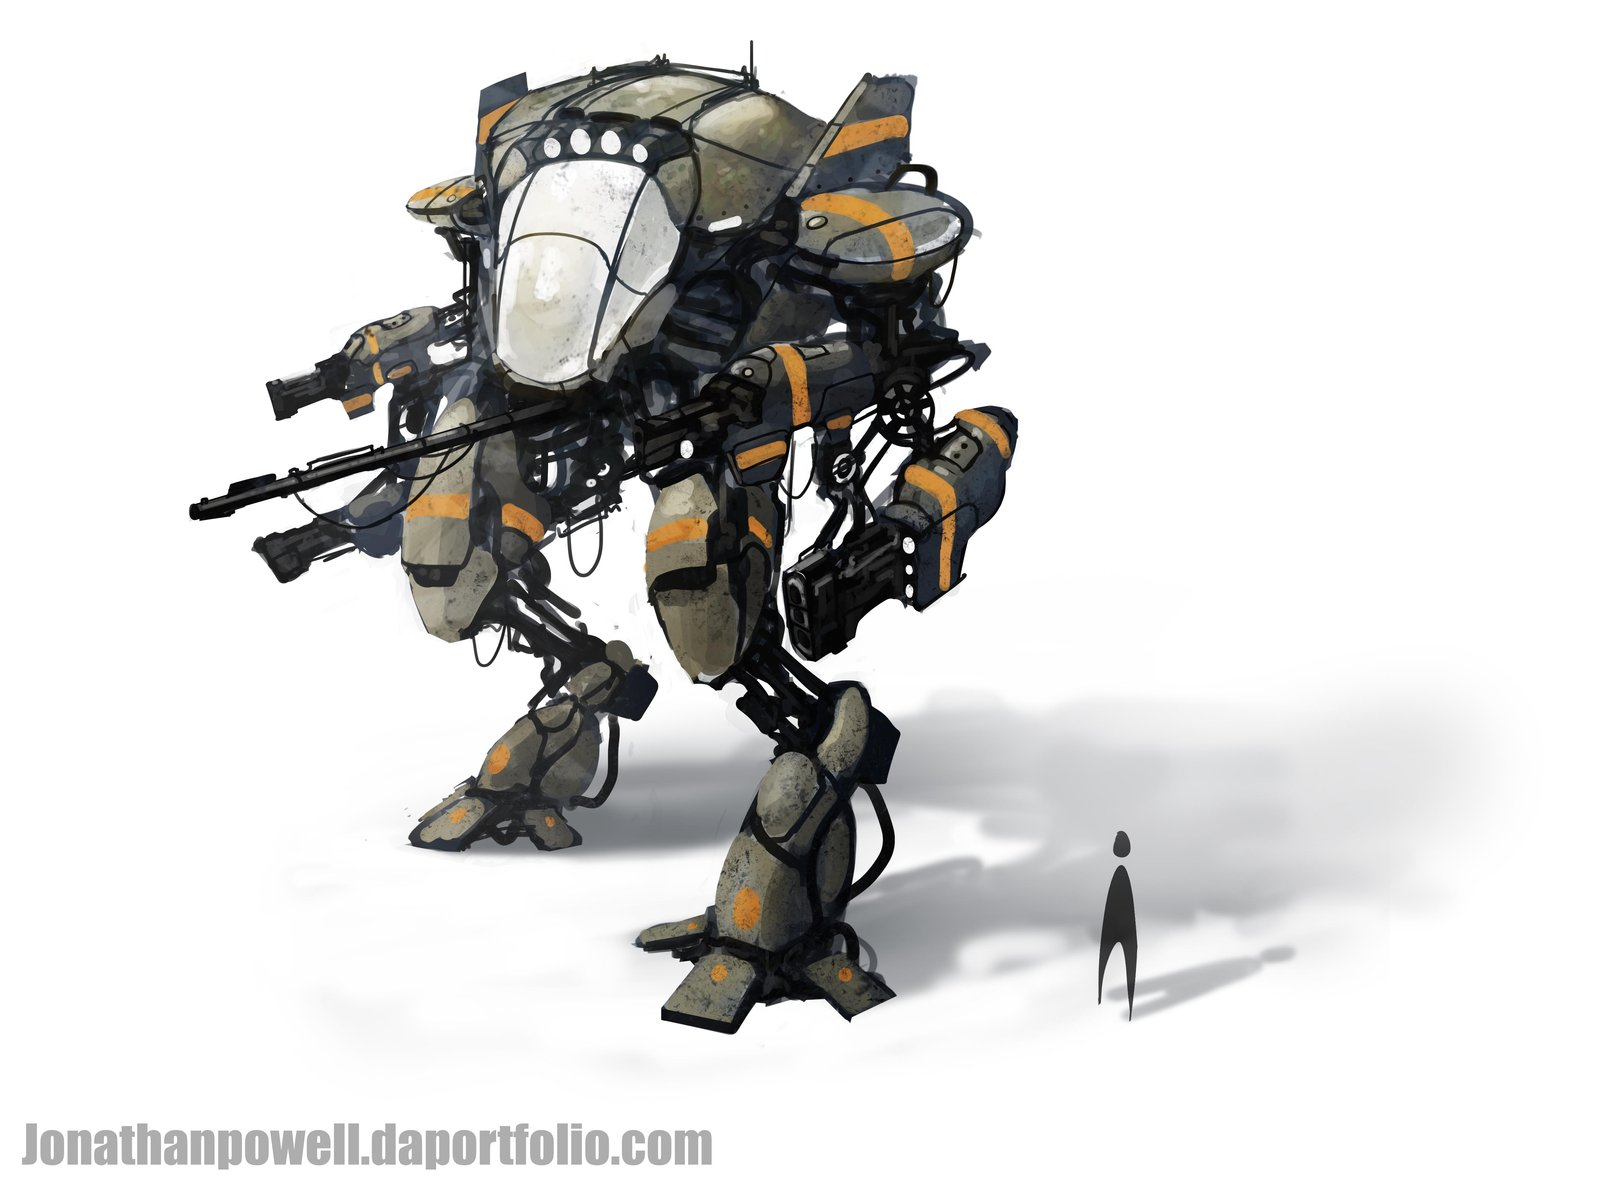 Images of Mech | 1600x1180